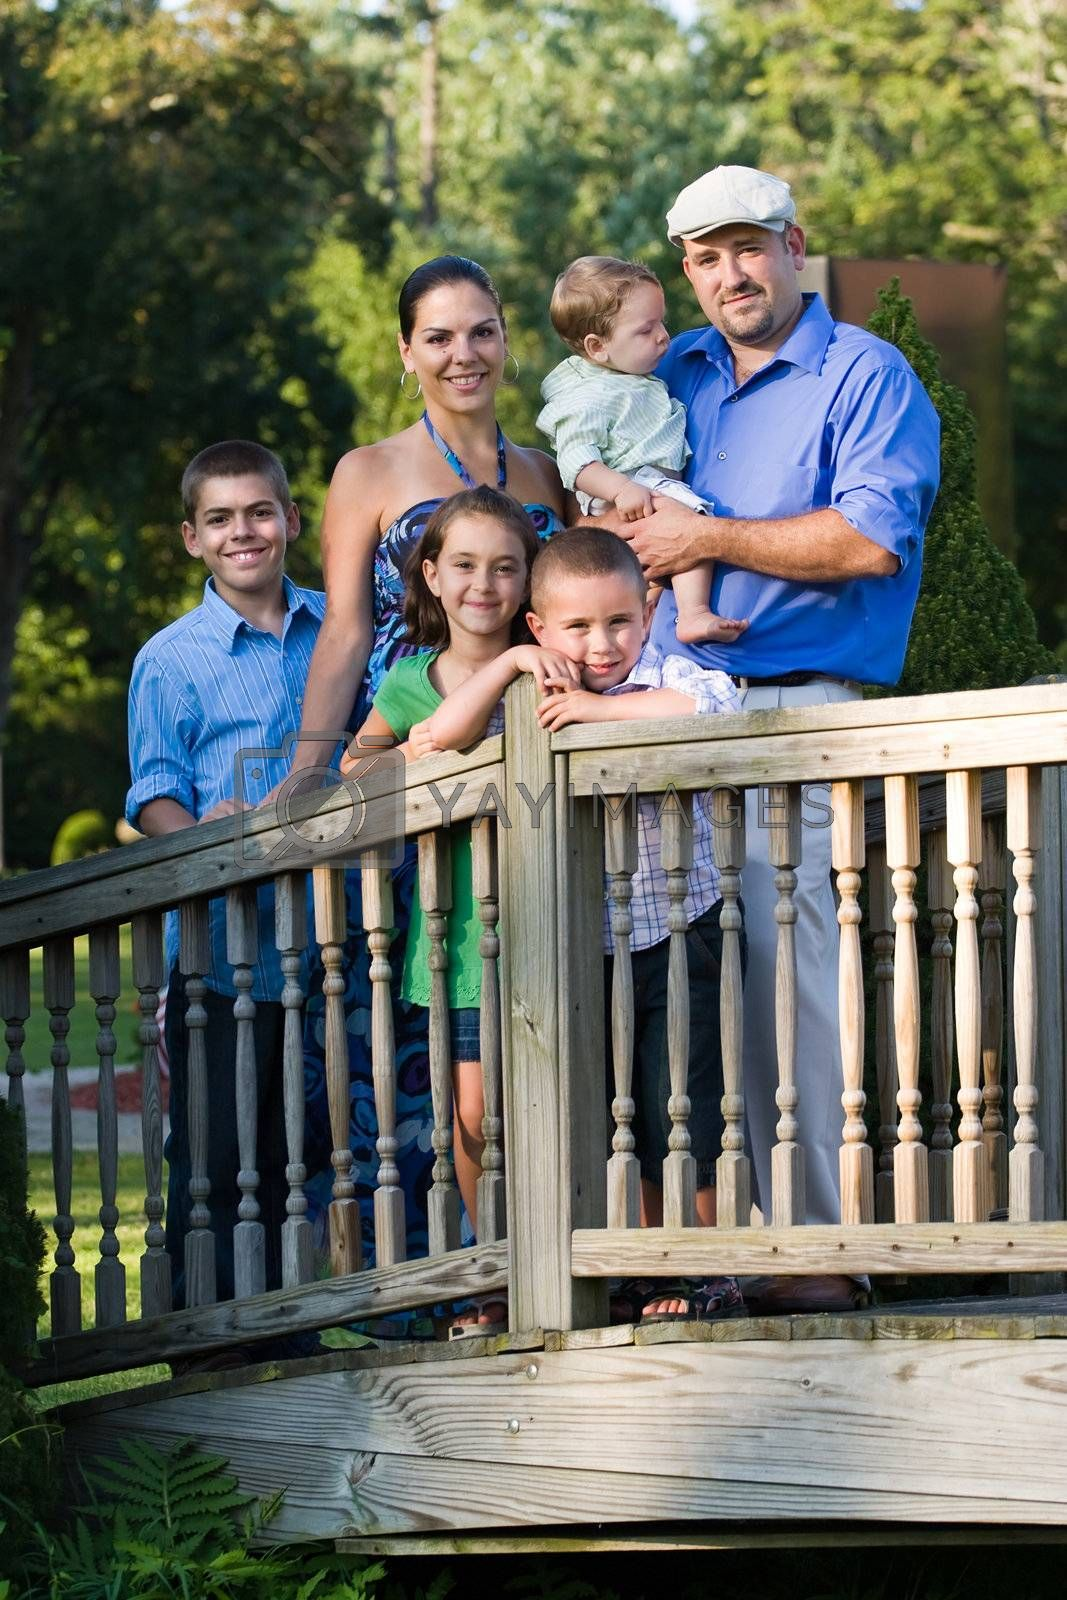 Portrait of an attractive young family with four children posing in a park on a wooden walking bridge.